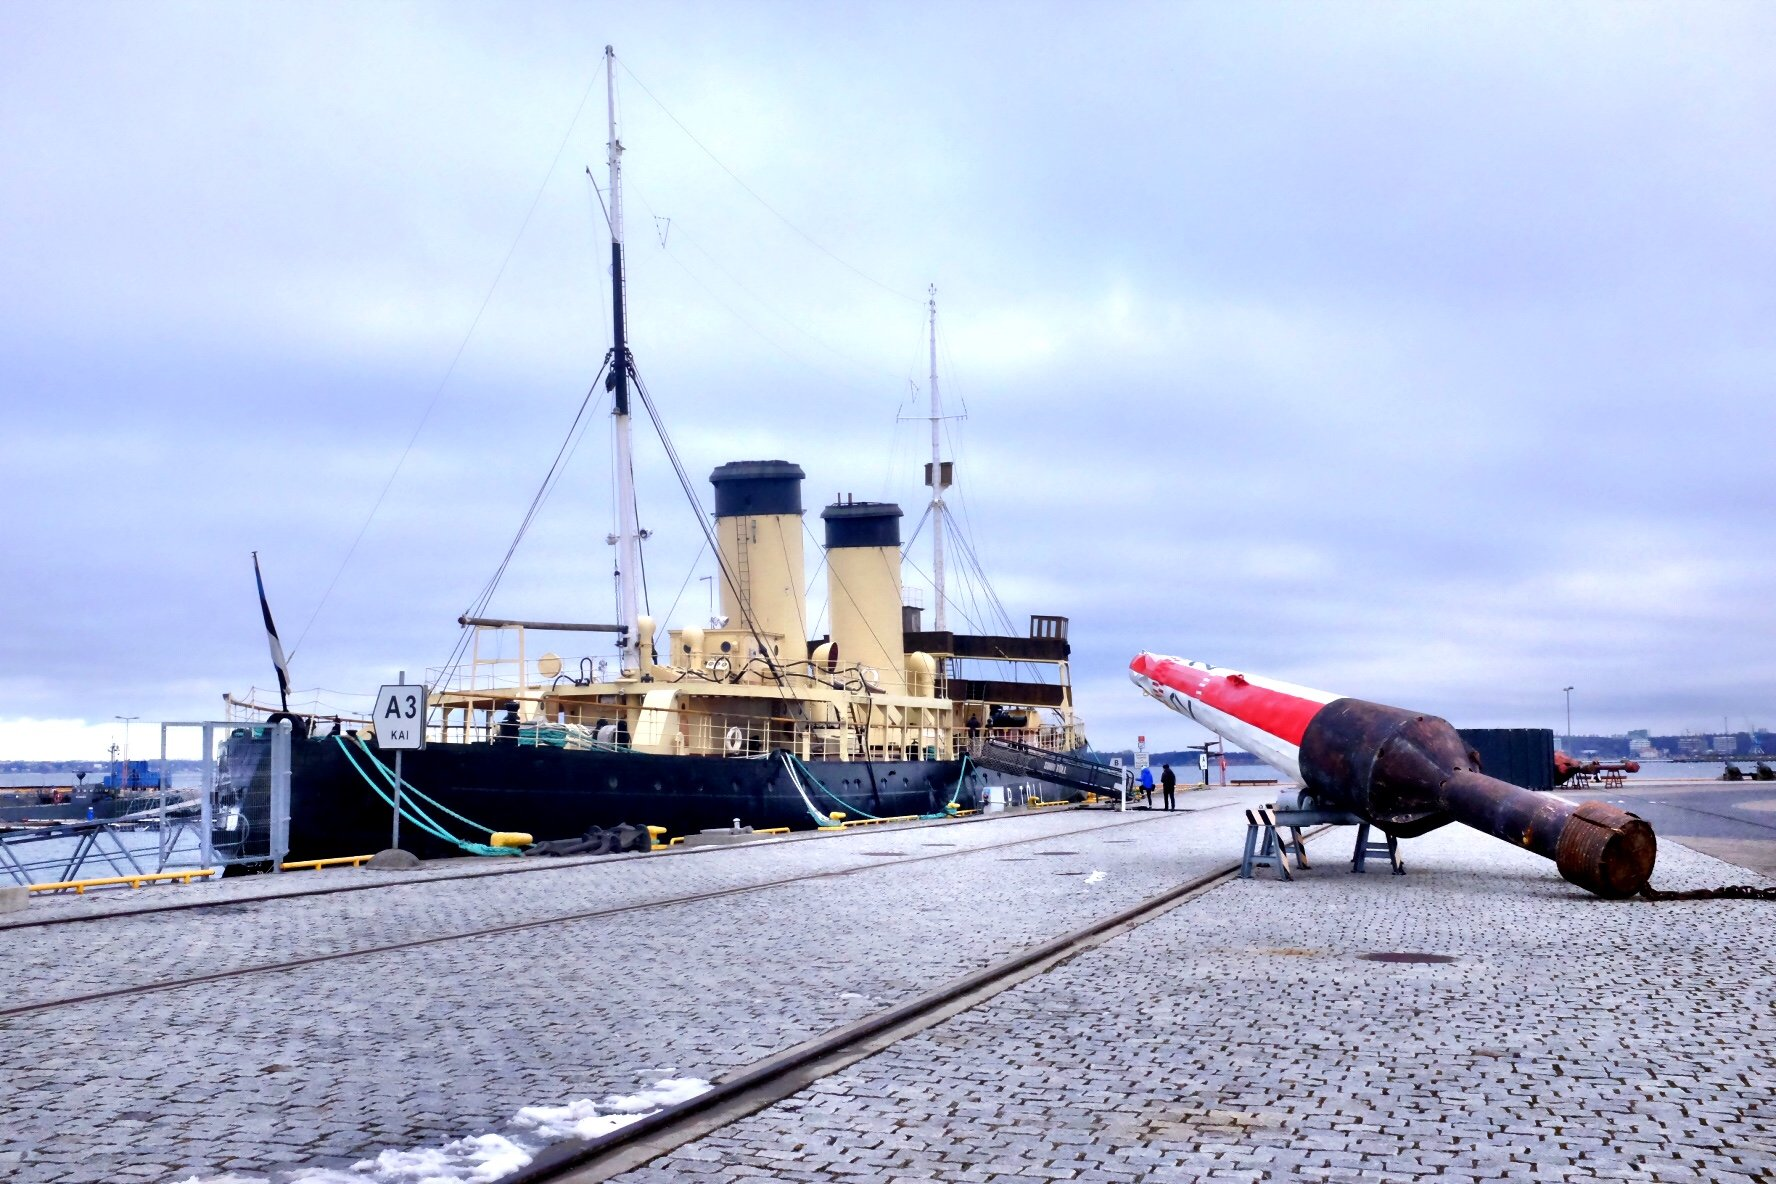 Icebreaker with boye exhibited at the Seaplane Museum in Tallinn